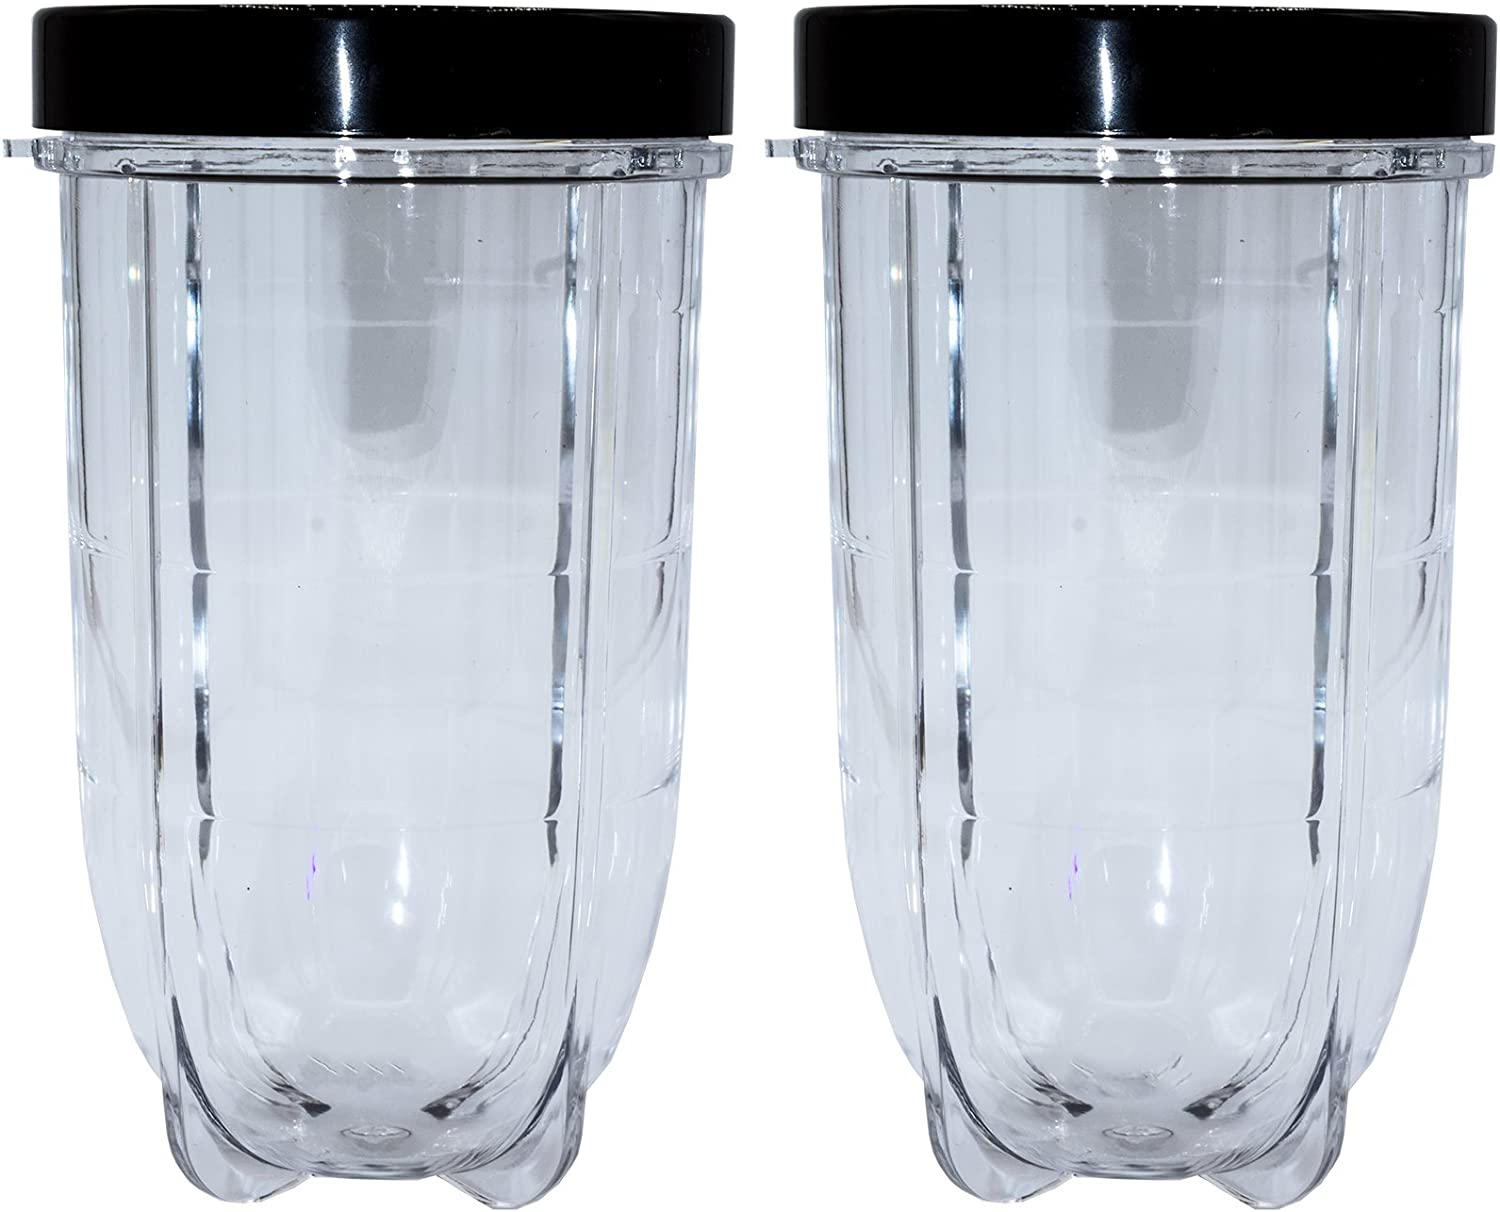 Blendin 2 Pack 16 Ounce Tall Cup with Black Jar Lid, Compatible with Original Magic Bullet Blender Juicer 250W MB1001